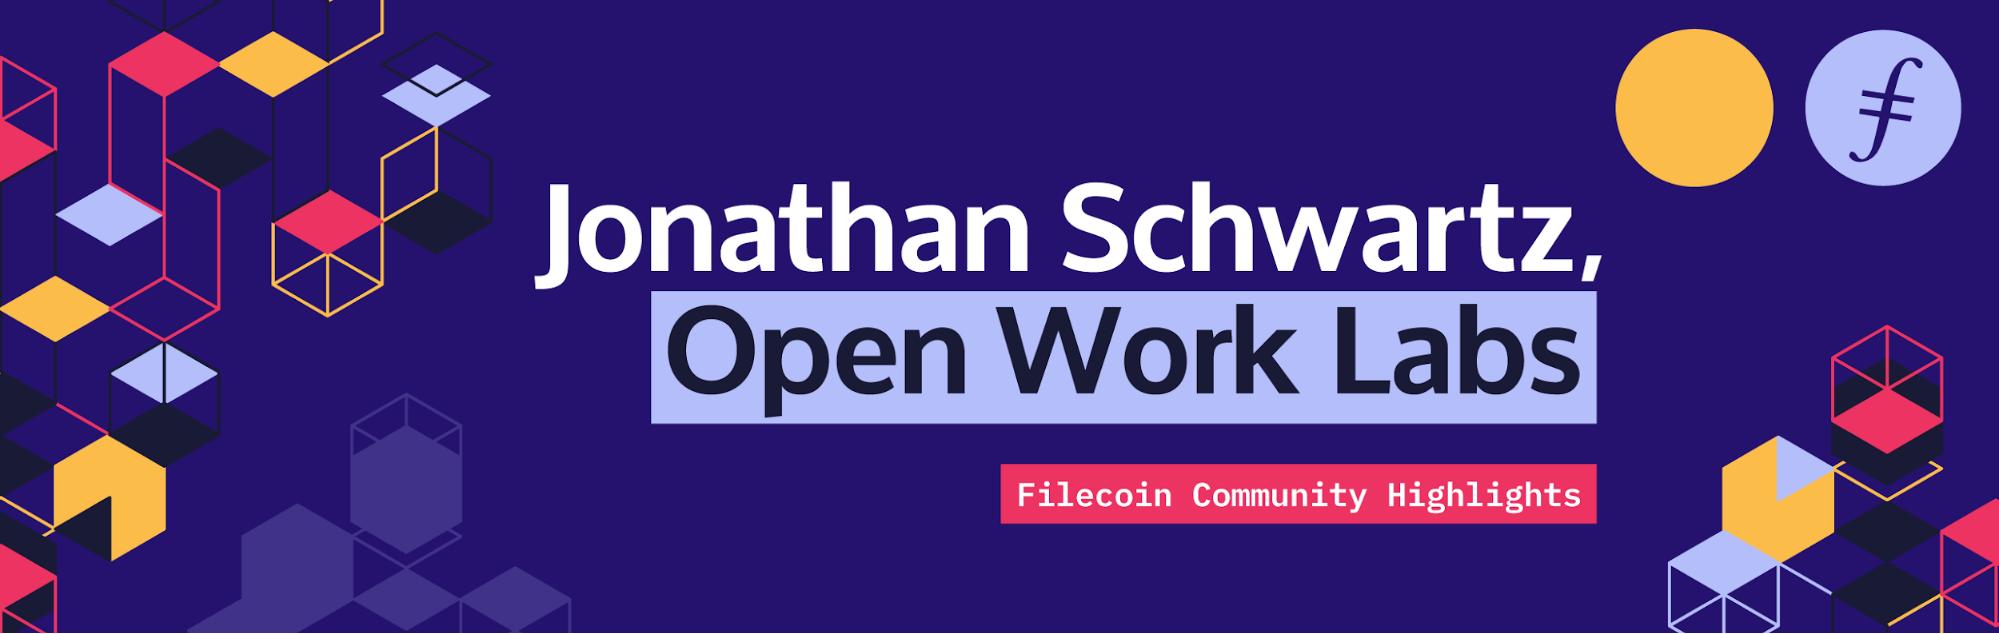 Jonathan Schwartz, Open Work Labs